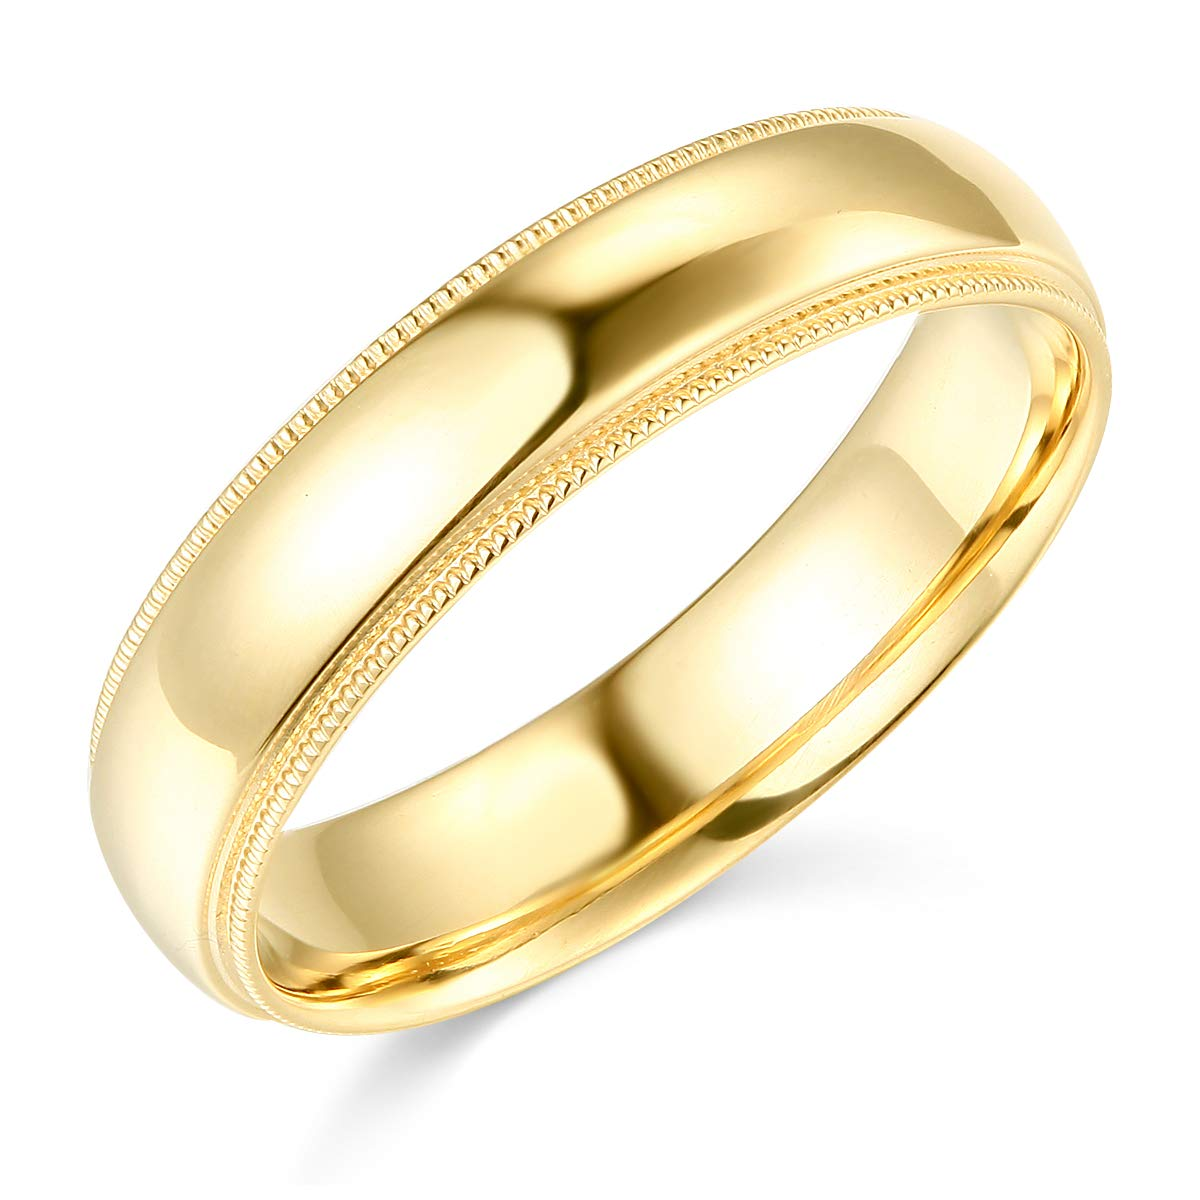 Wellingsale Mens 14k Yellow Gold Solid 5mm CLASSIC FIT Milgrain Traditional Wedding Band Ring - Size 11